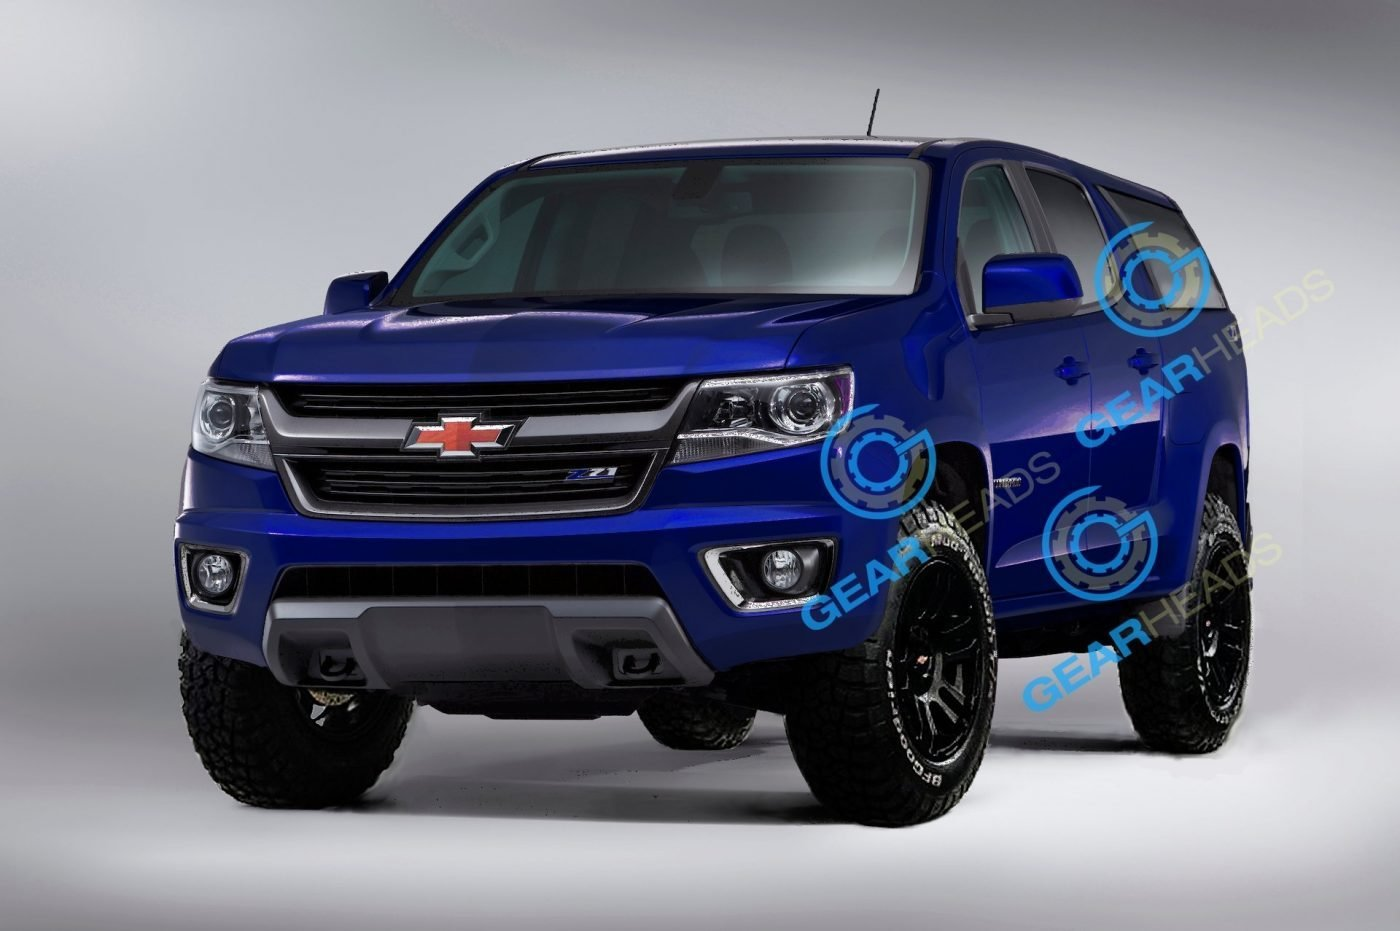 New 2019 Chevrolet Blazer Look Hd Images Car Release Preview On This Month